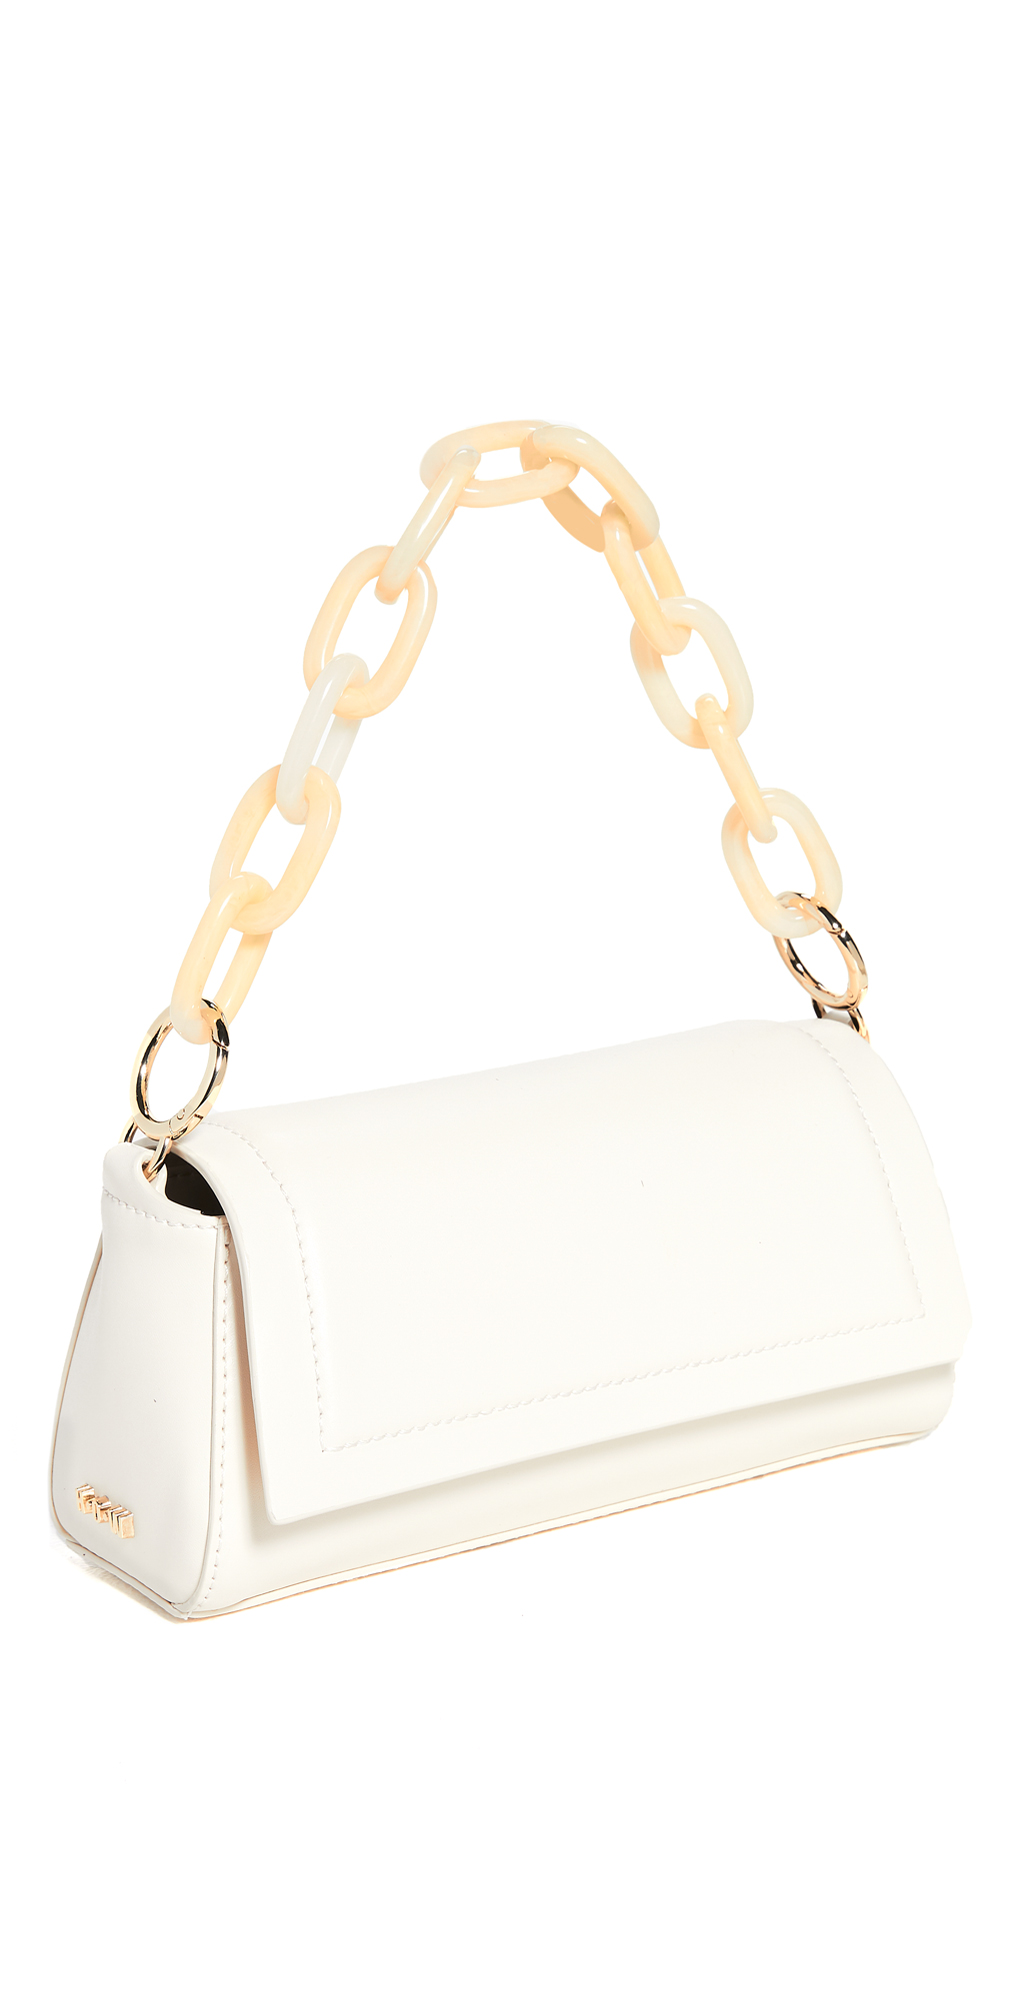 House of Want HOW We Play Crossbody Bag